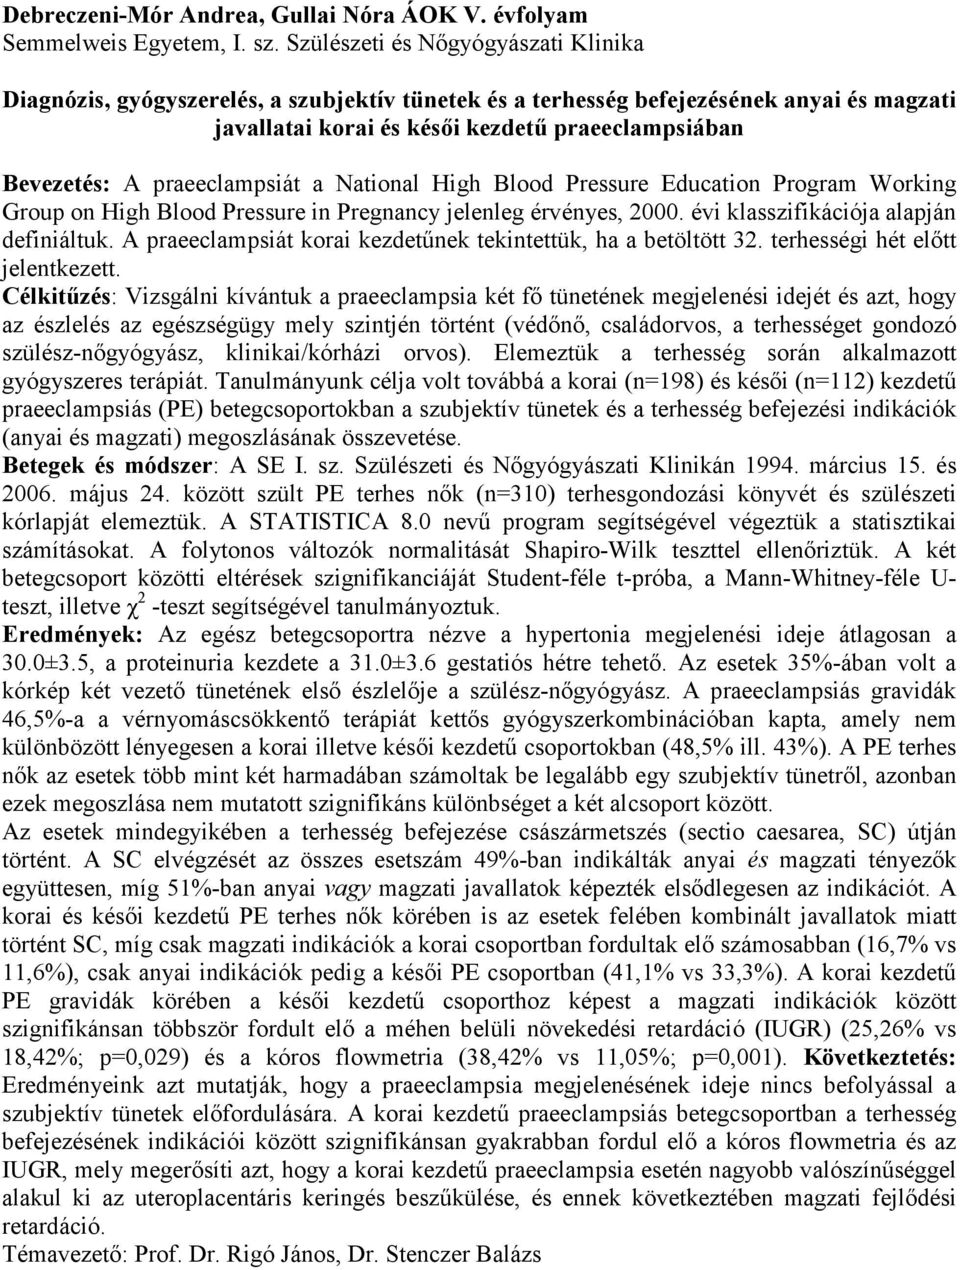 praeeclampsiát a National High Blood Pressure Education Program Working Group on High Blood Pressure in Pregnancy jelenleg érvényes, 2000. évi klasszifikációja alapján definiáltuk.